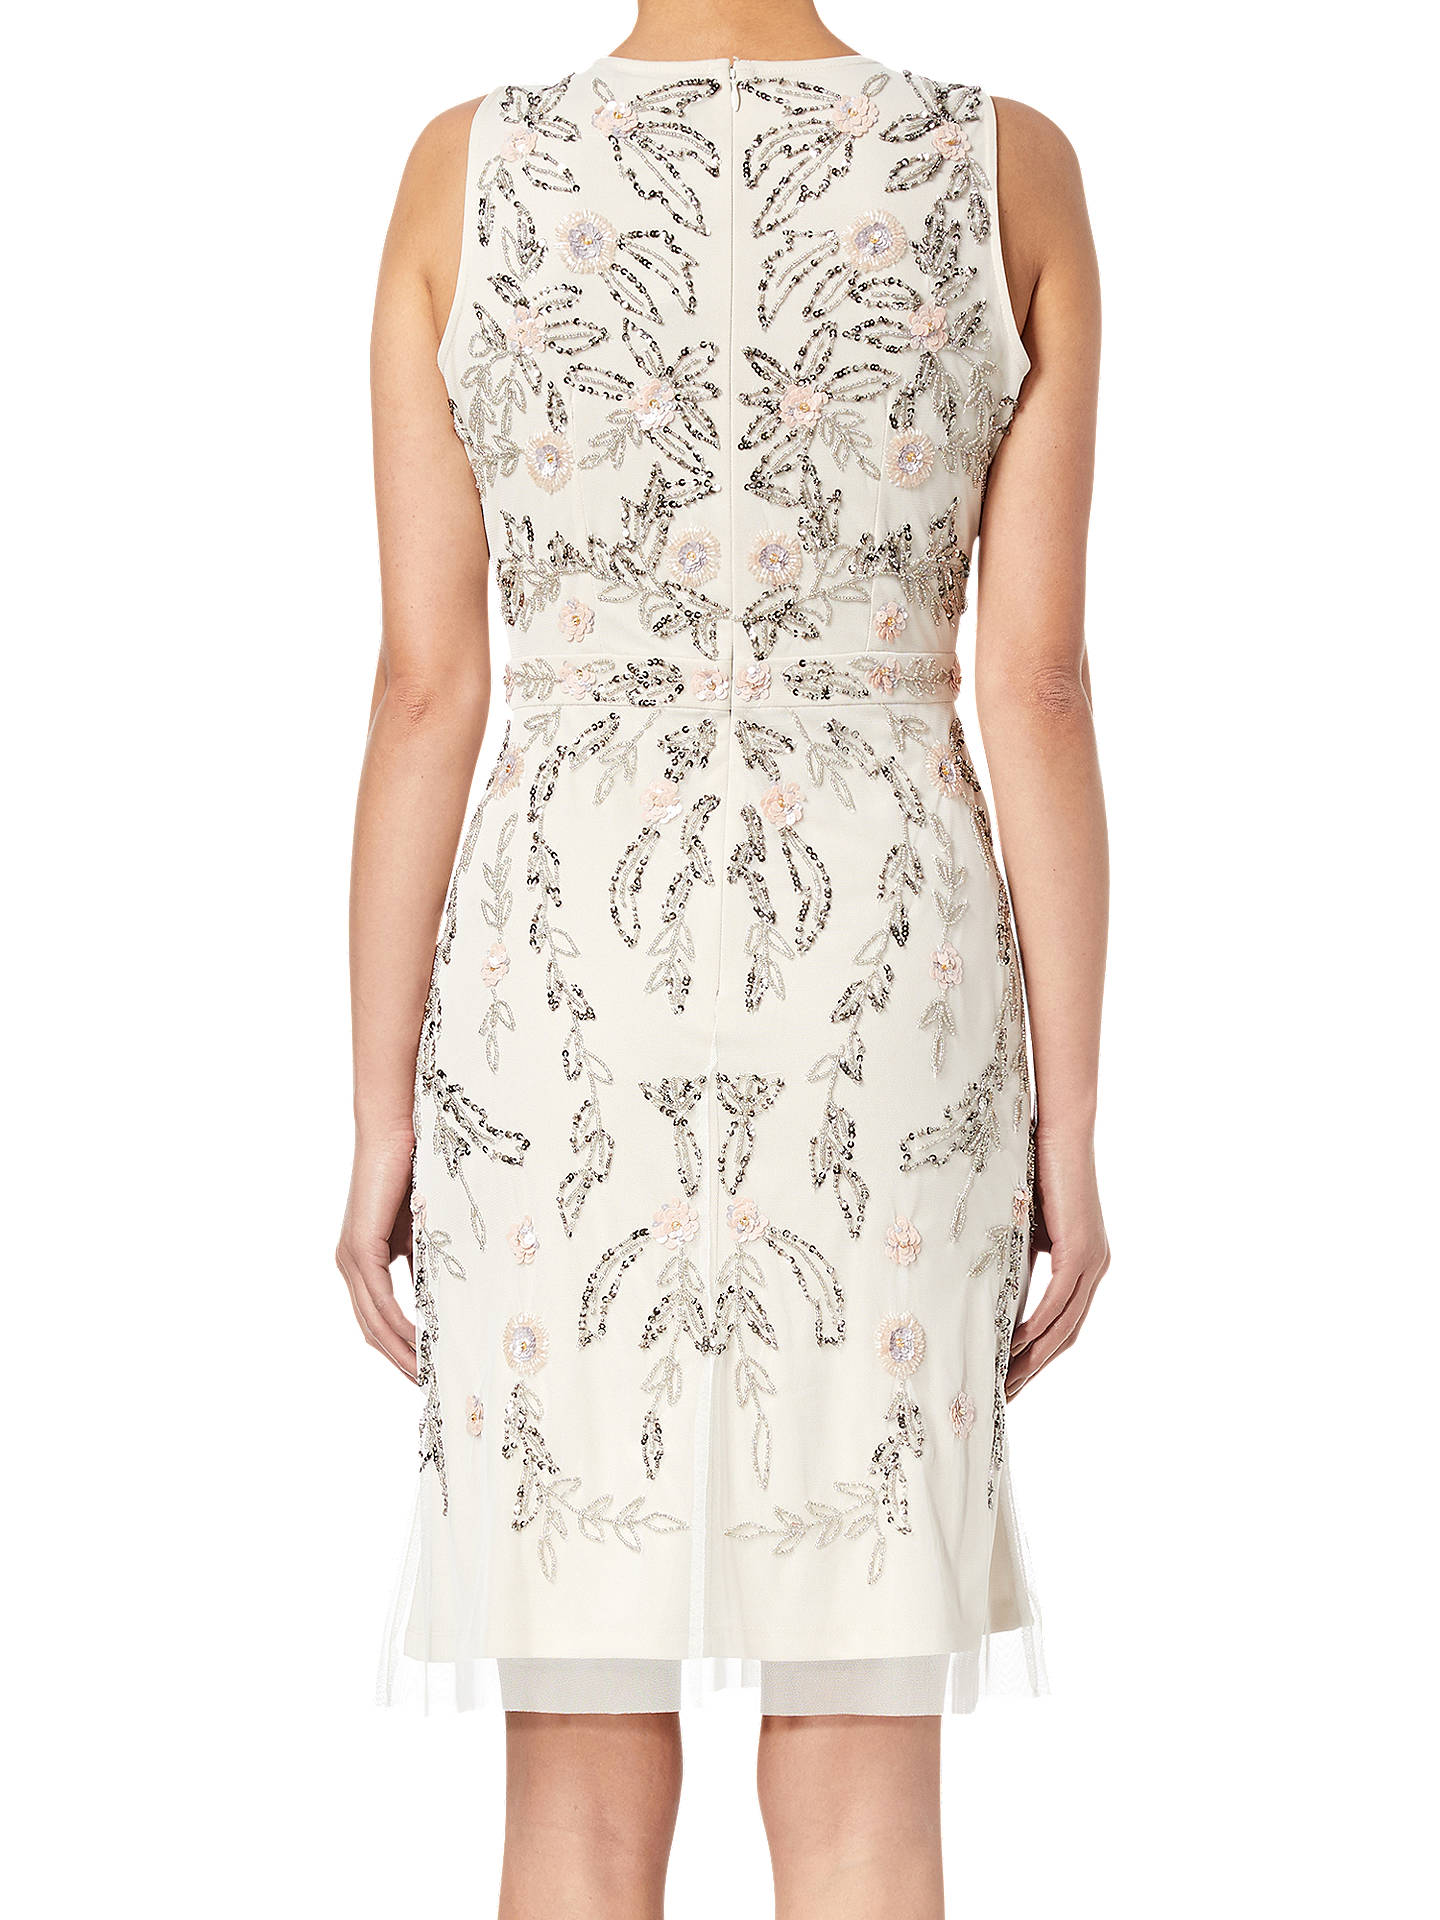 Buy Adrianna Papell Beaded Dress, Ivory/Multi, 6 Online at johnlewis.com